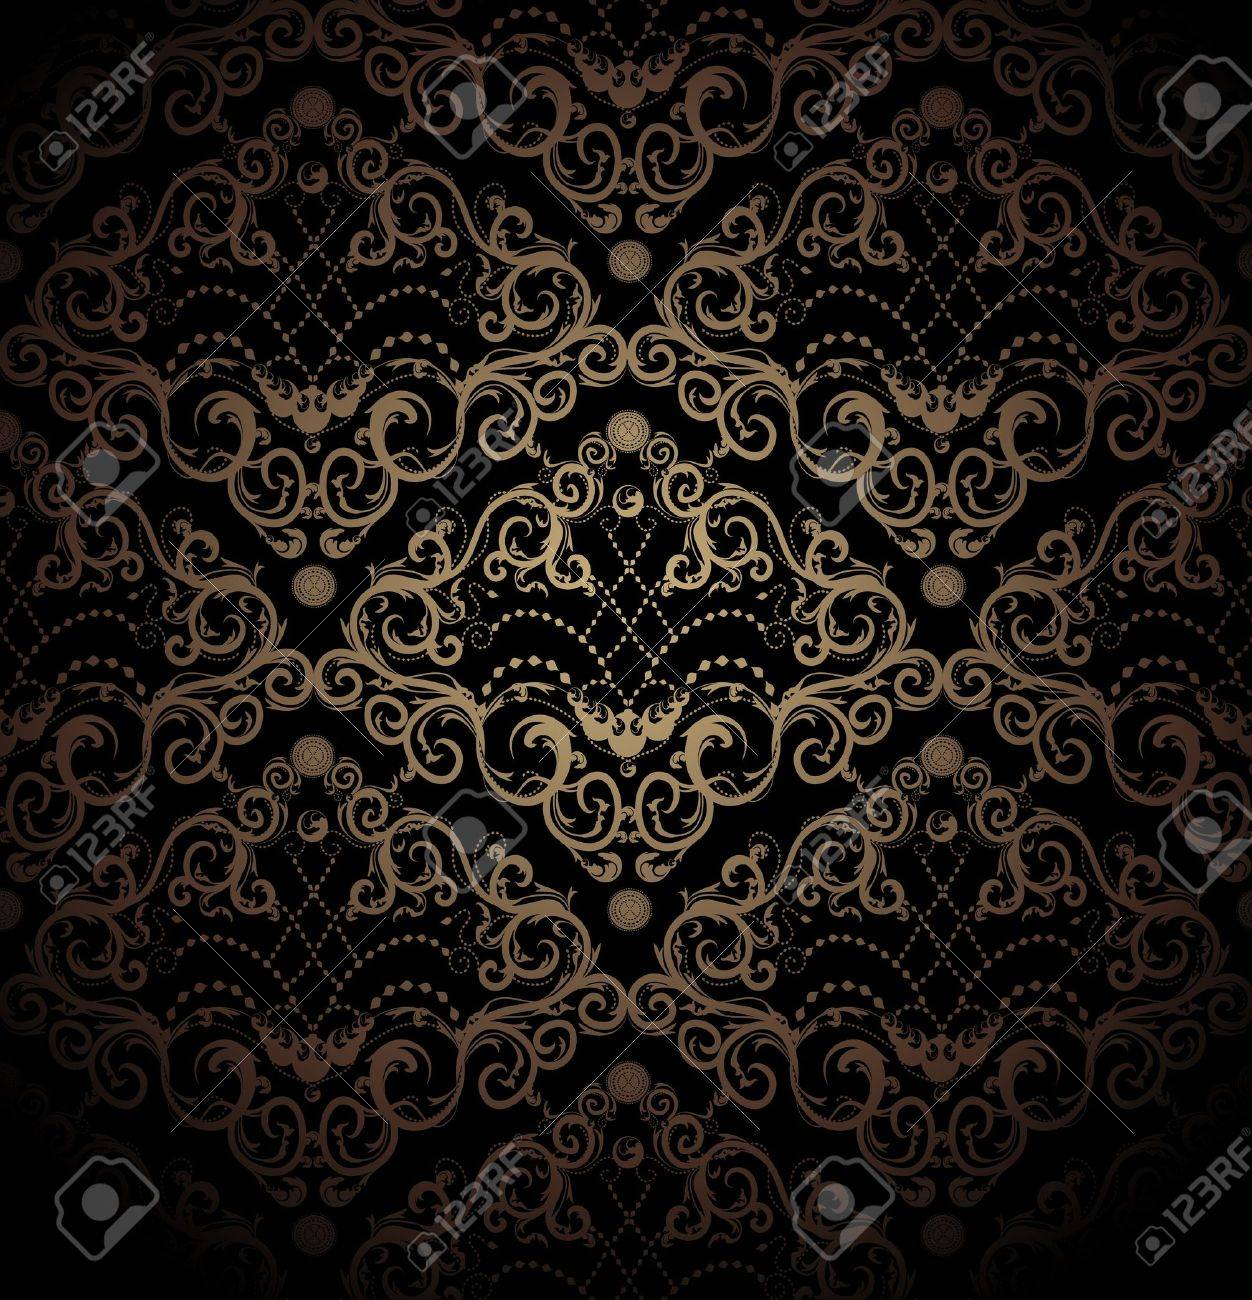 Floral vector black and gold seamless royal beauty ornament - 9523984